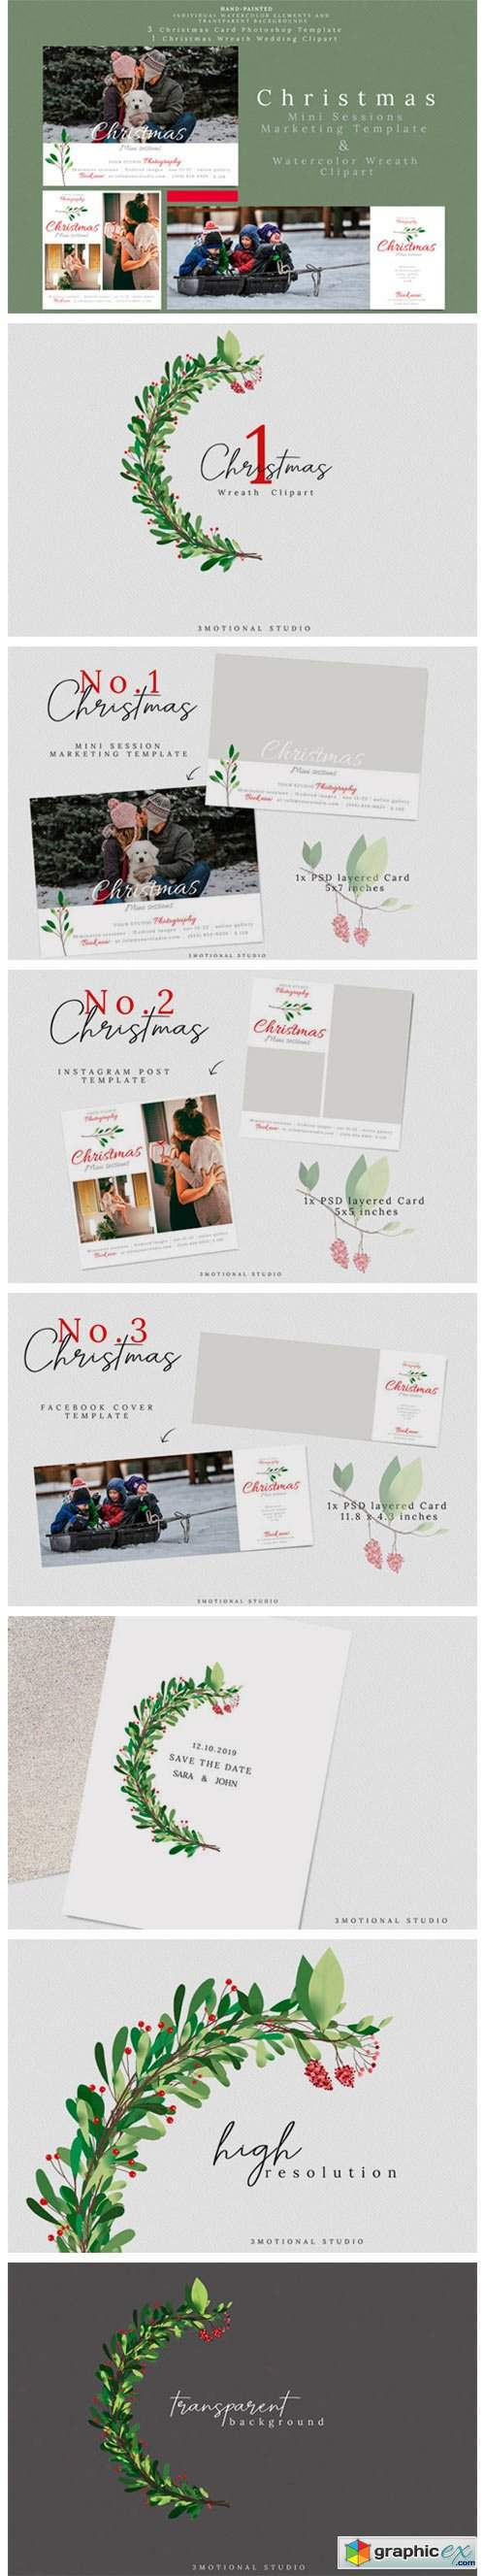 Holiday Mini Sessions Marketing Template